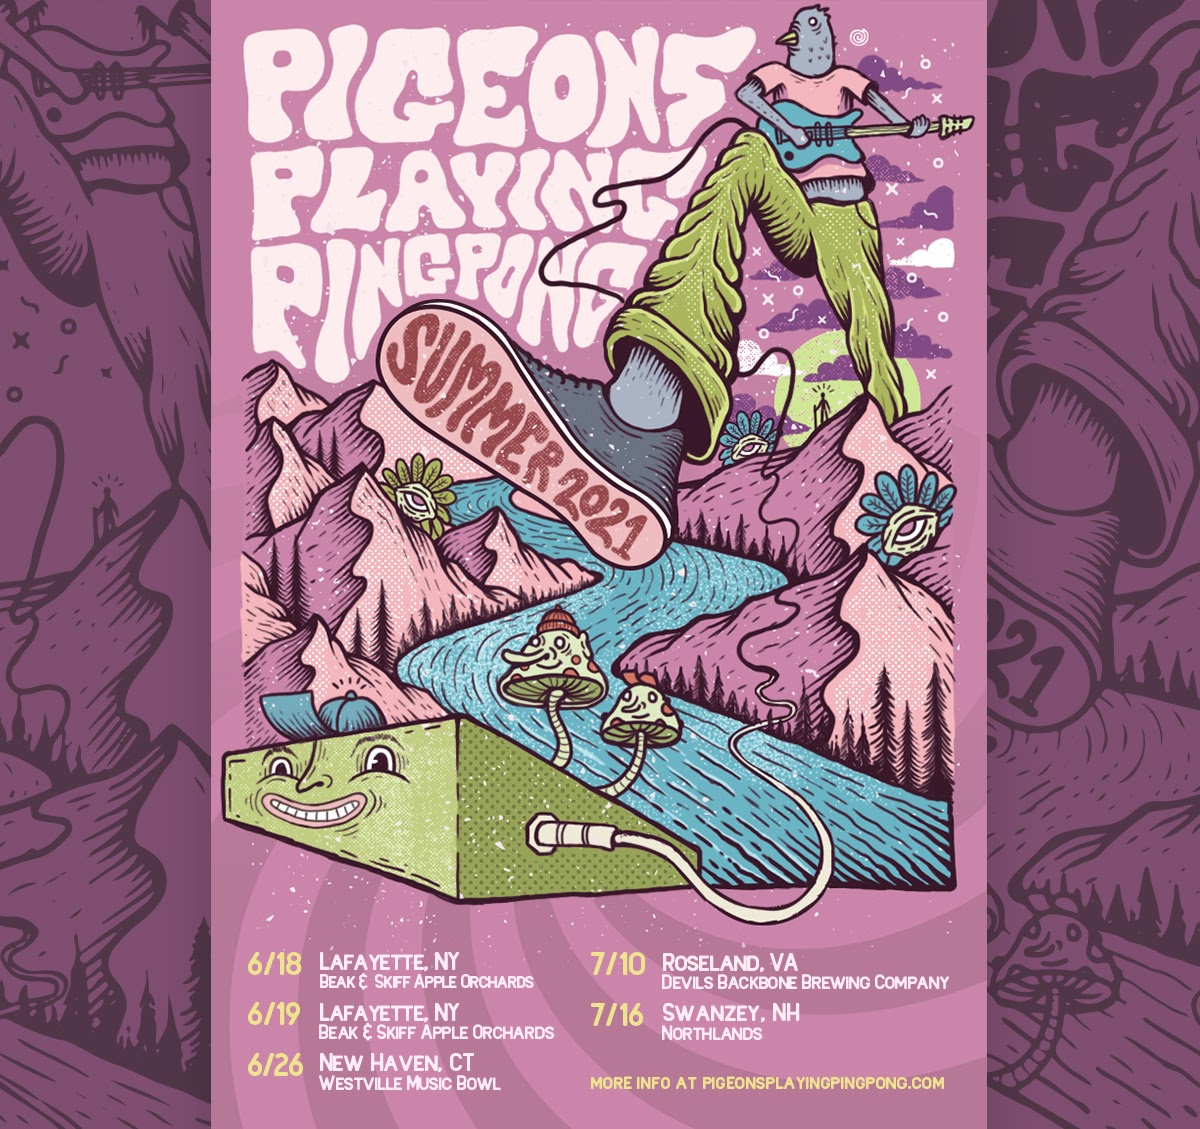 pigeons playing ping pong announce five